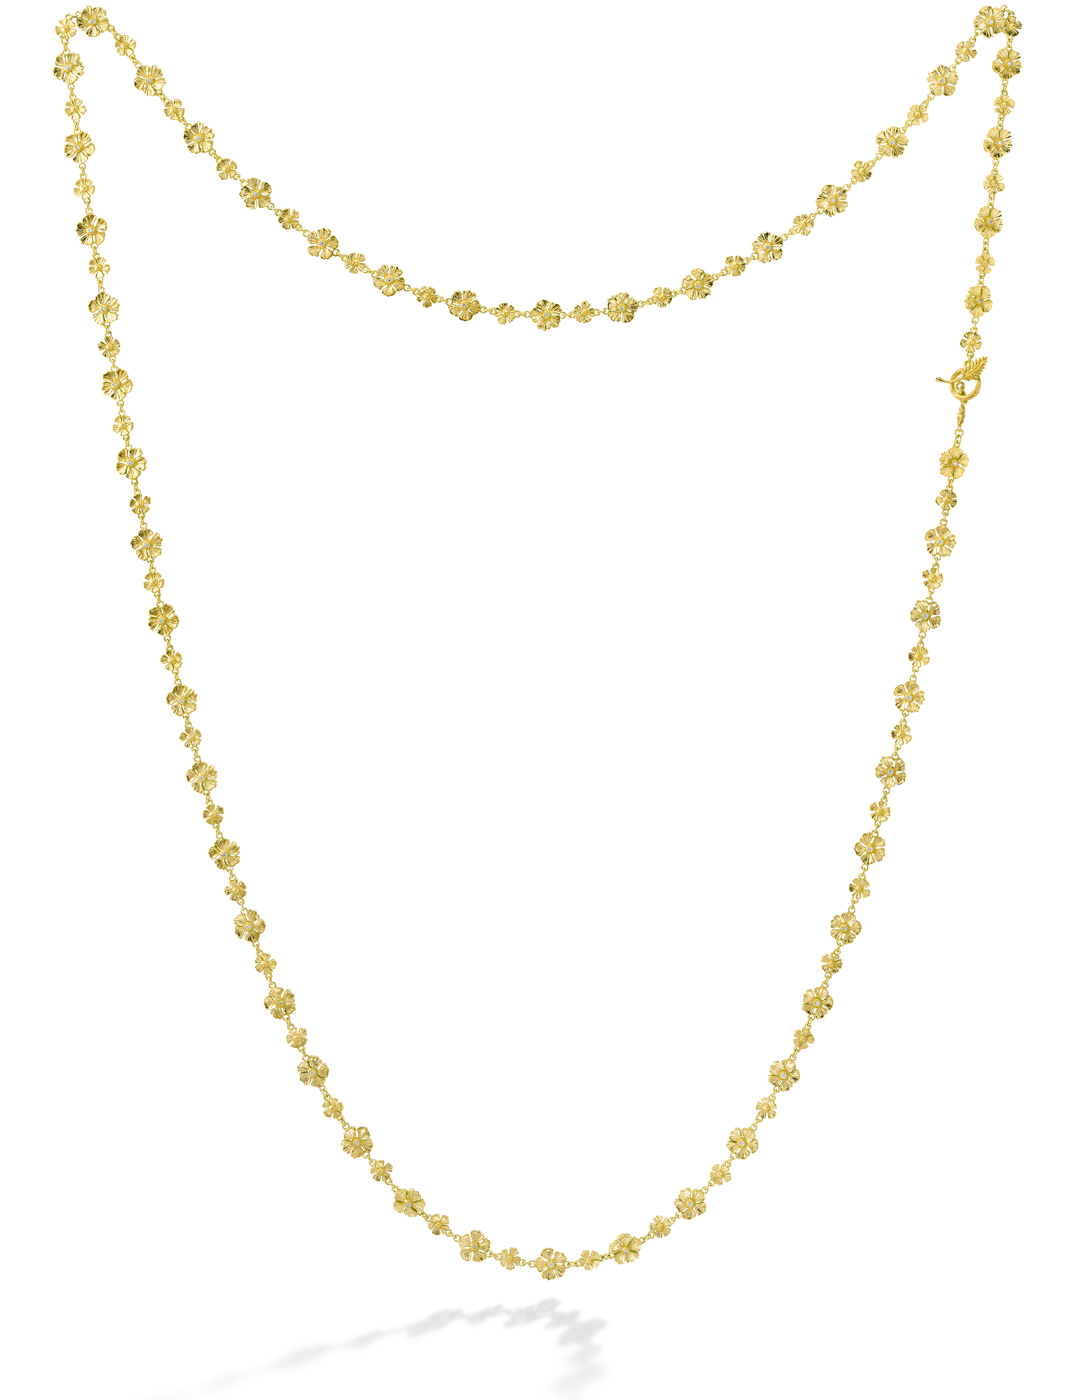 mish_necklaces_StrawFlwr-Classic 42-NK-1